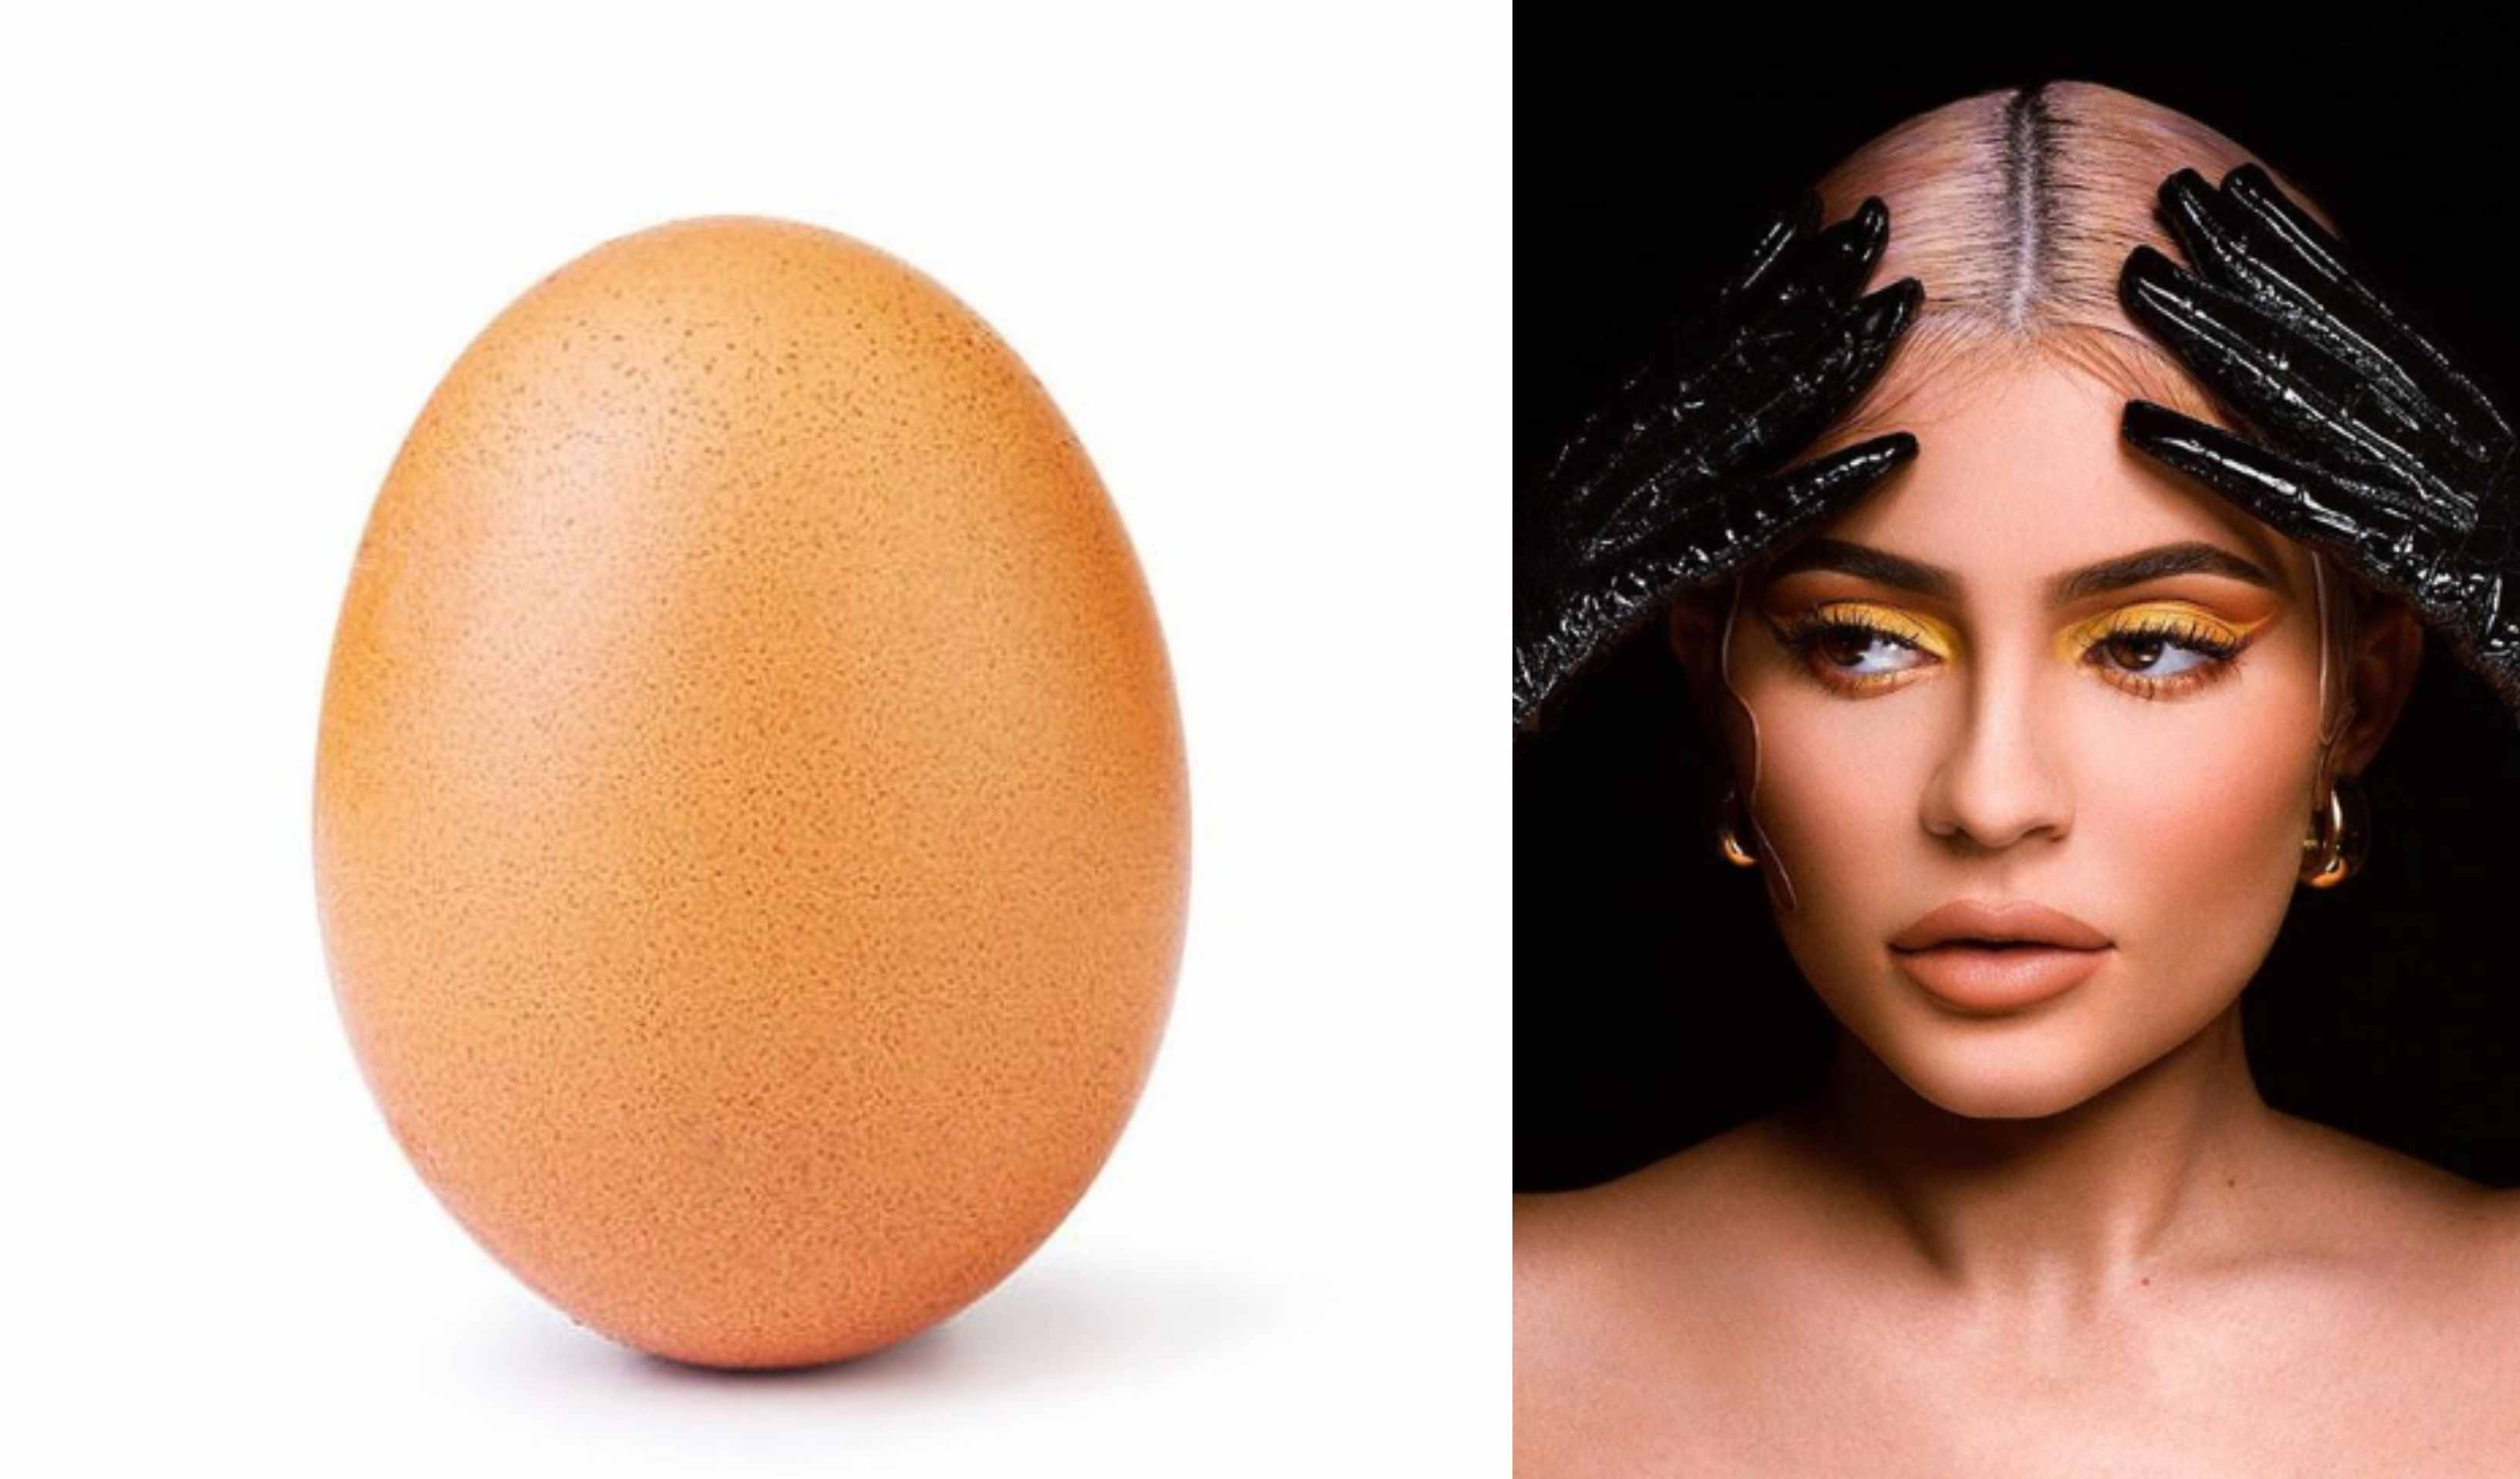 Egg, picture, Kylie Jenner, Instagram, NewsMobile, Mobile, Trend, Social Media, Trending, India